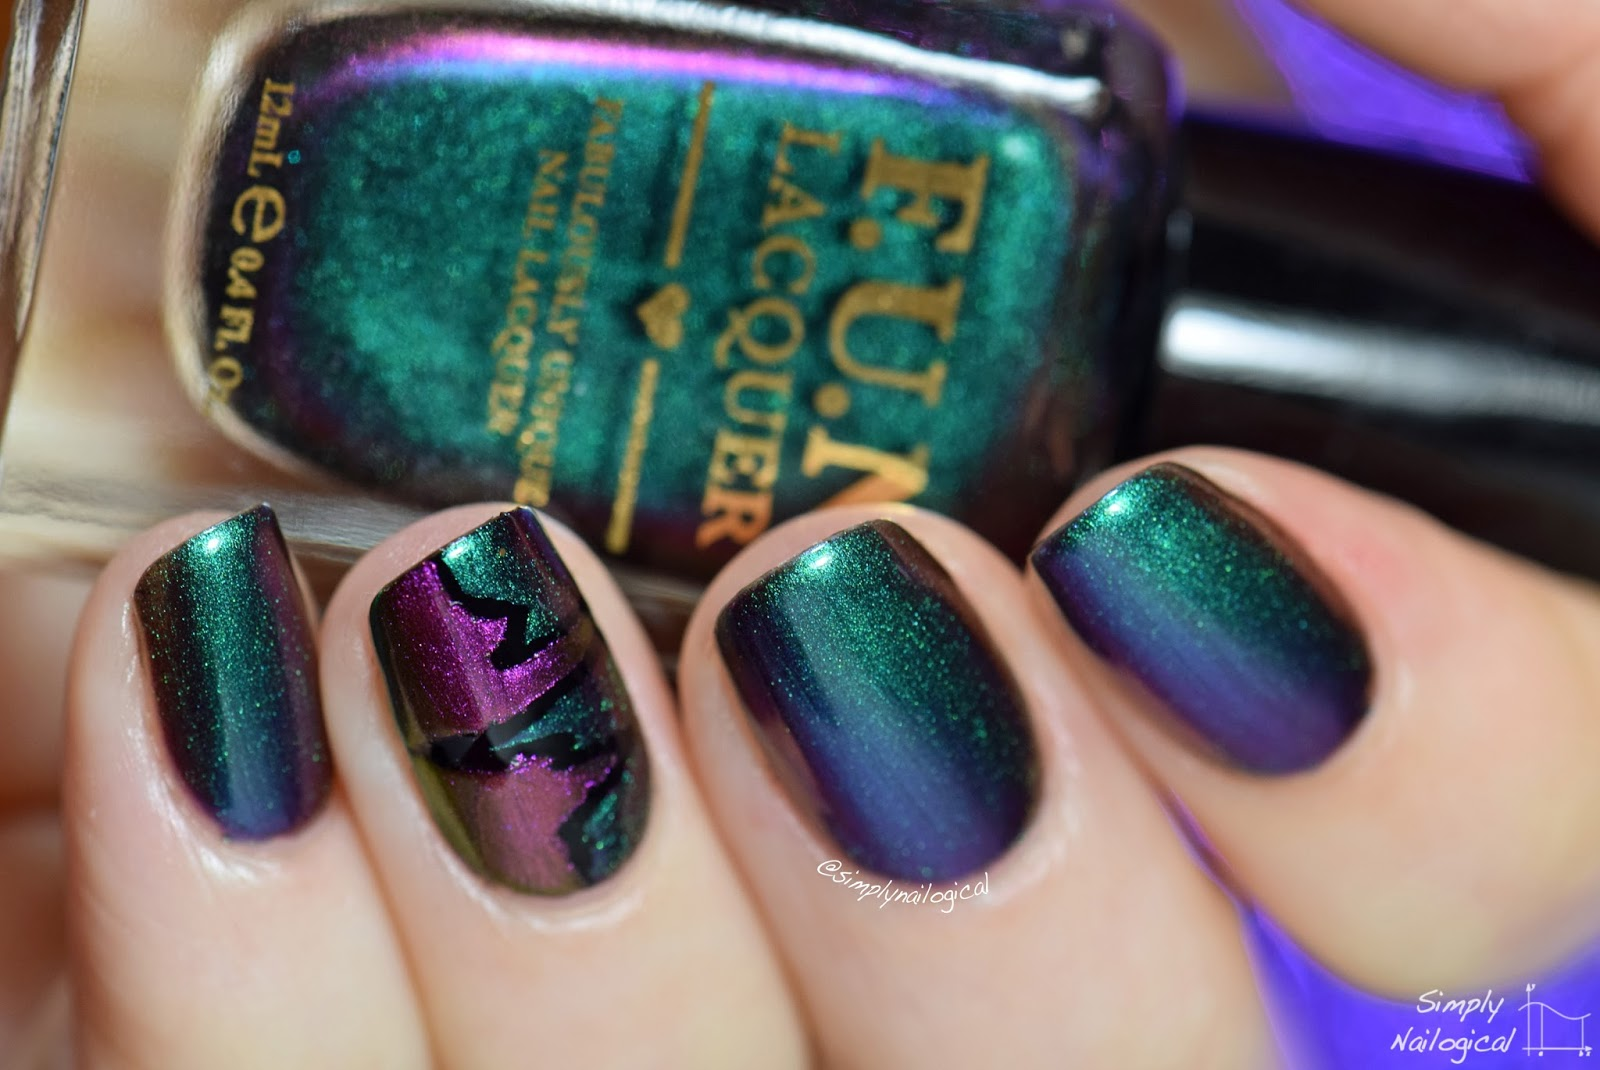 FUN Lacquer Blessing swatch